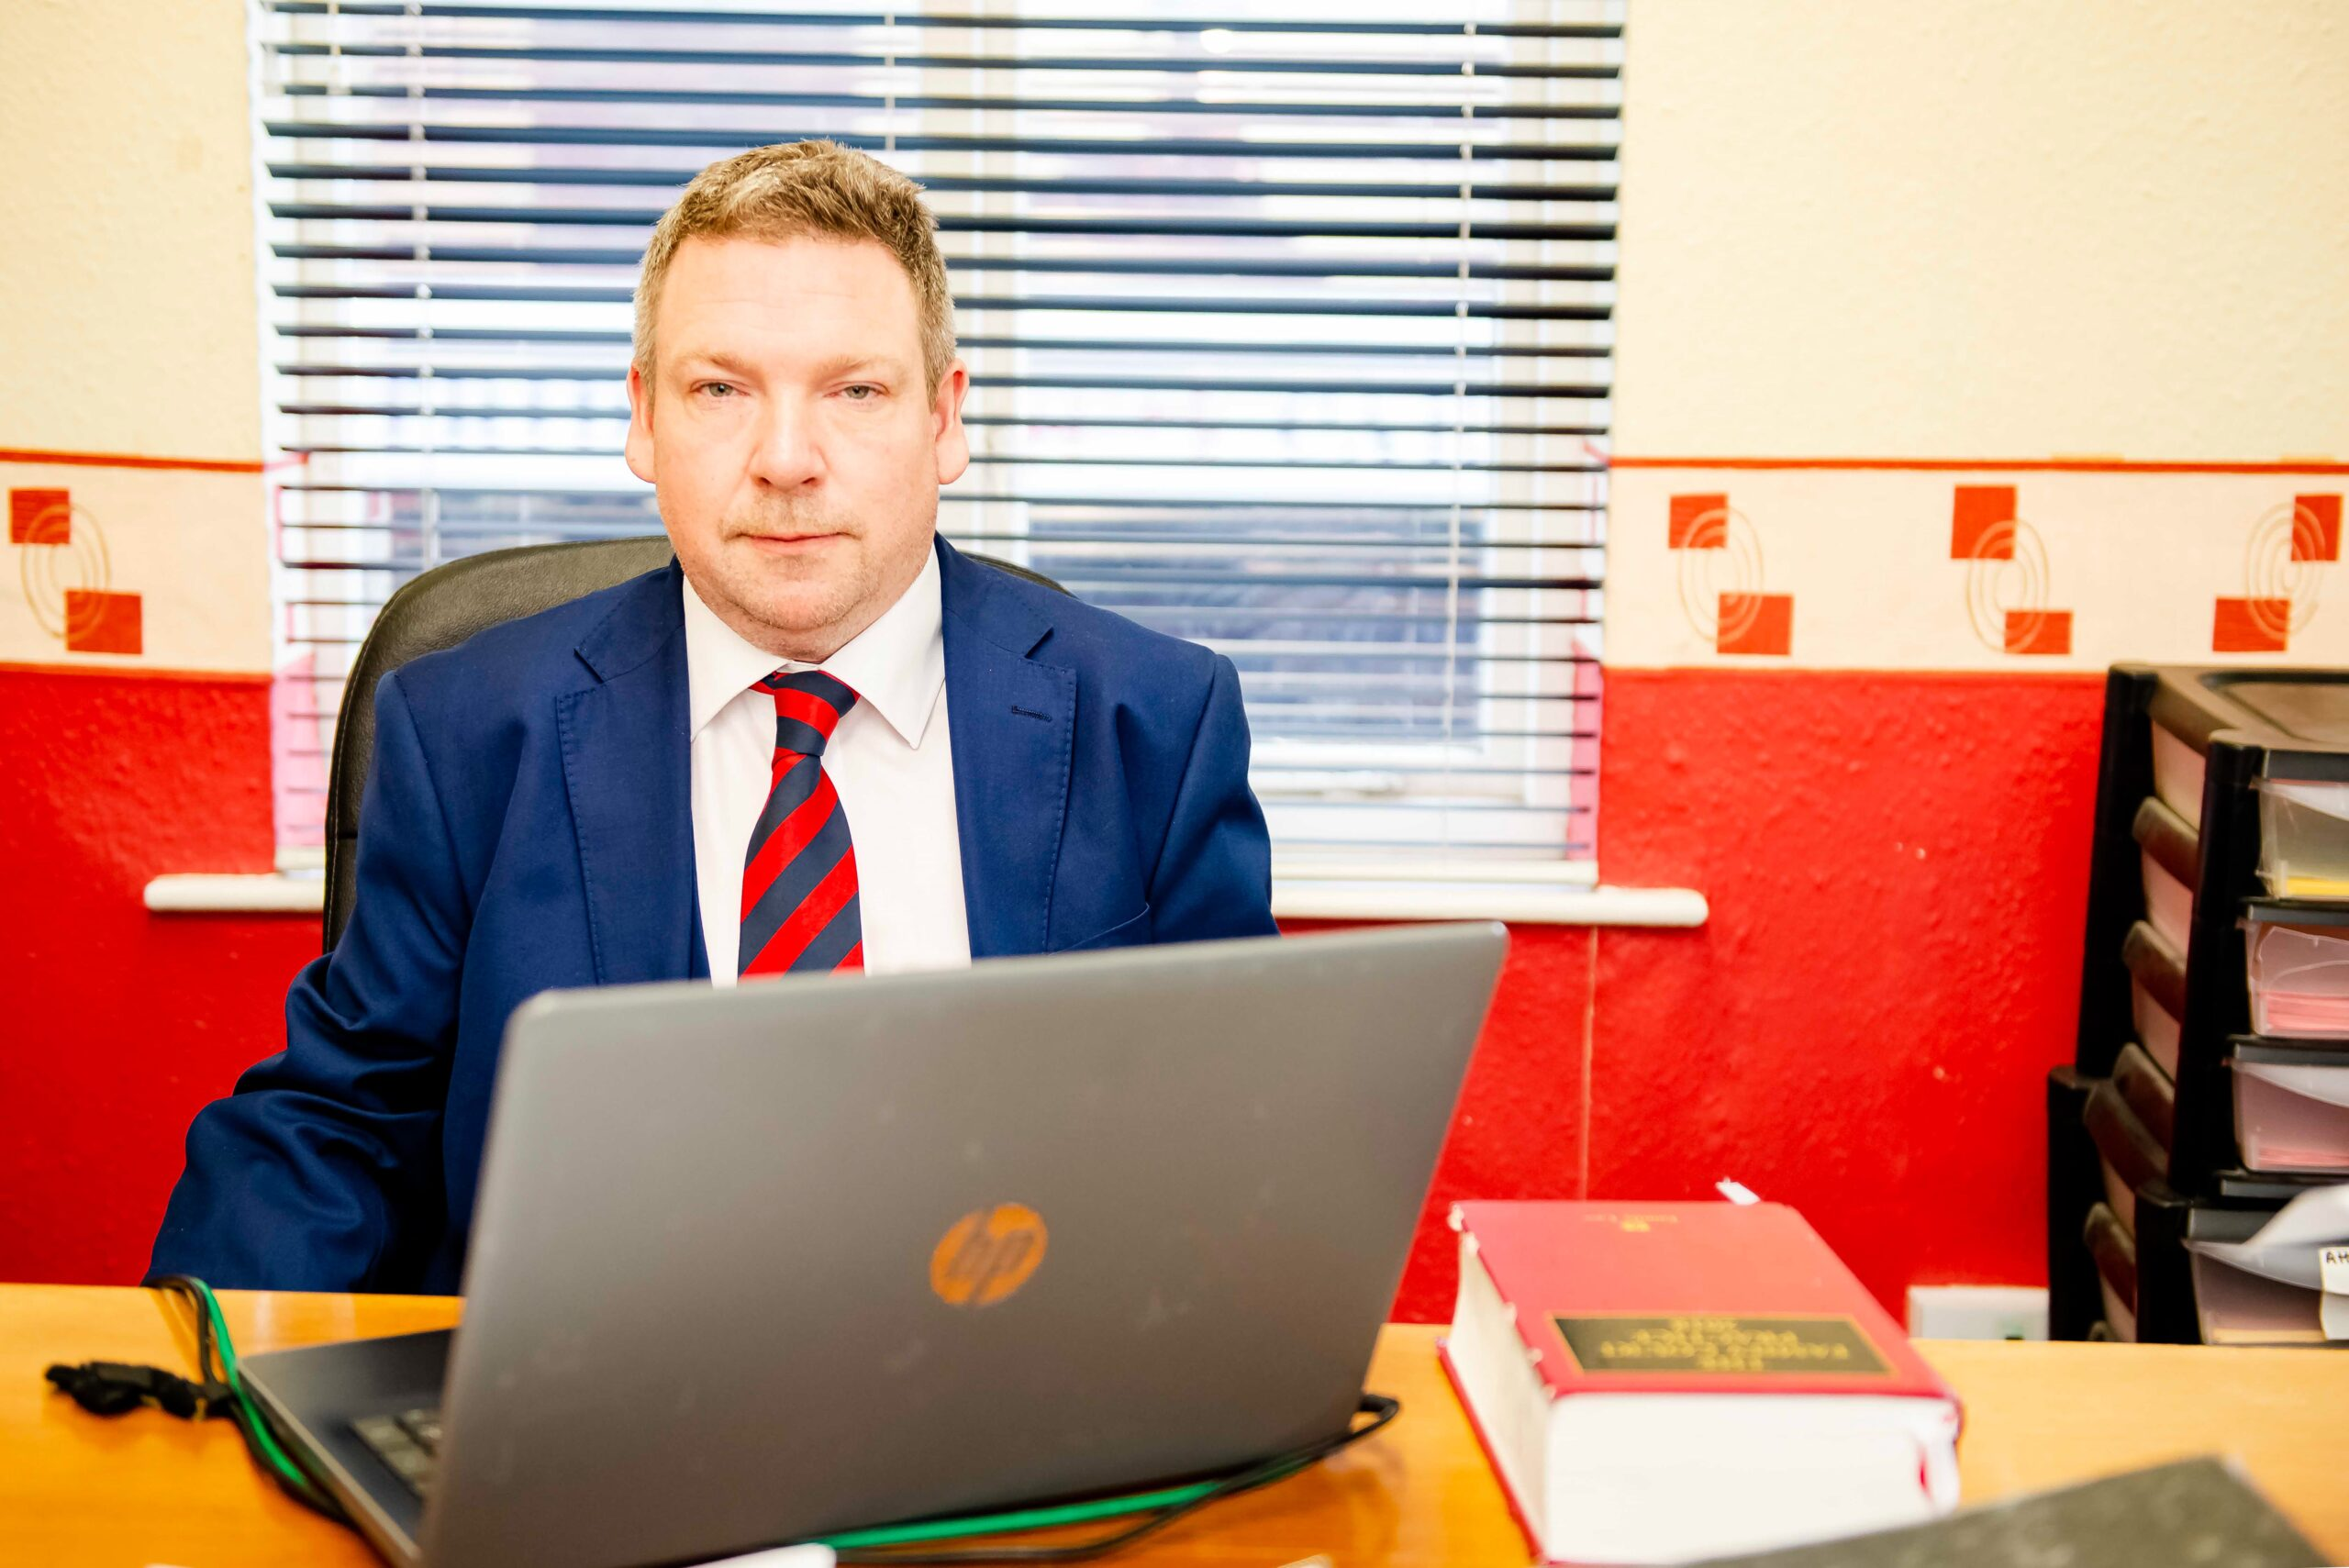 Clive at HRS Family Law Solicitors Dudley